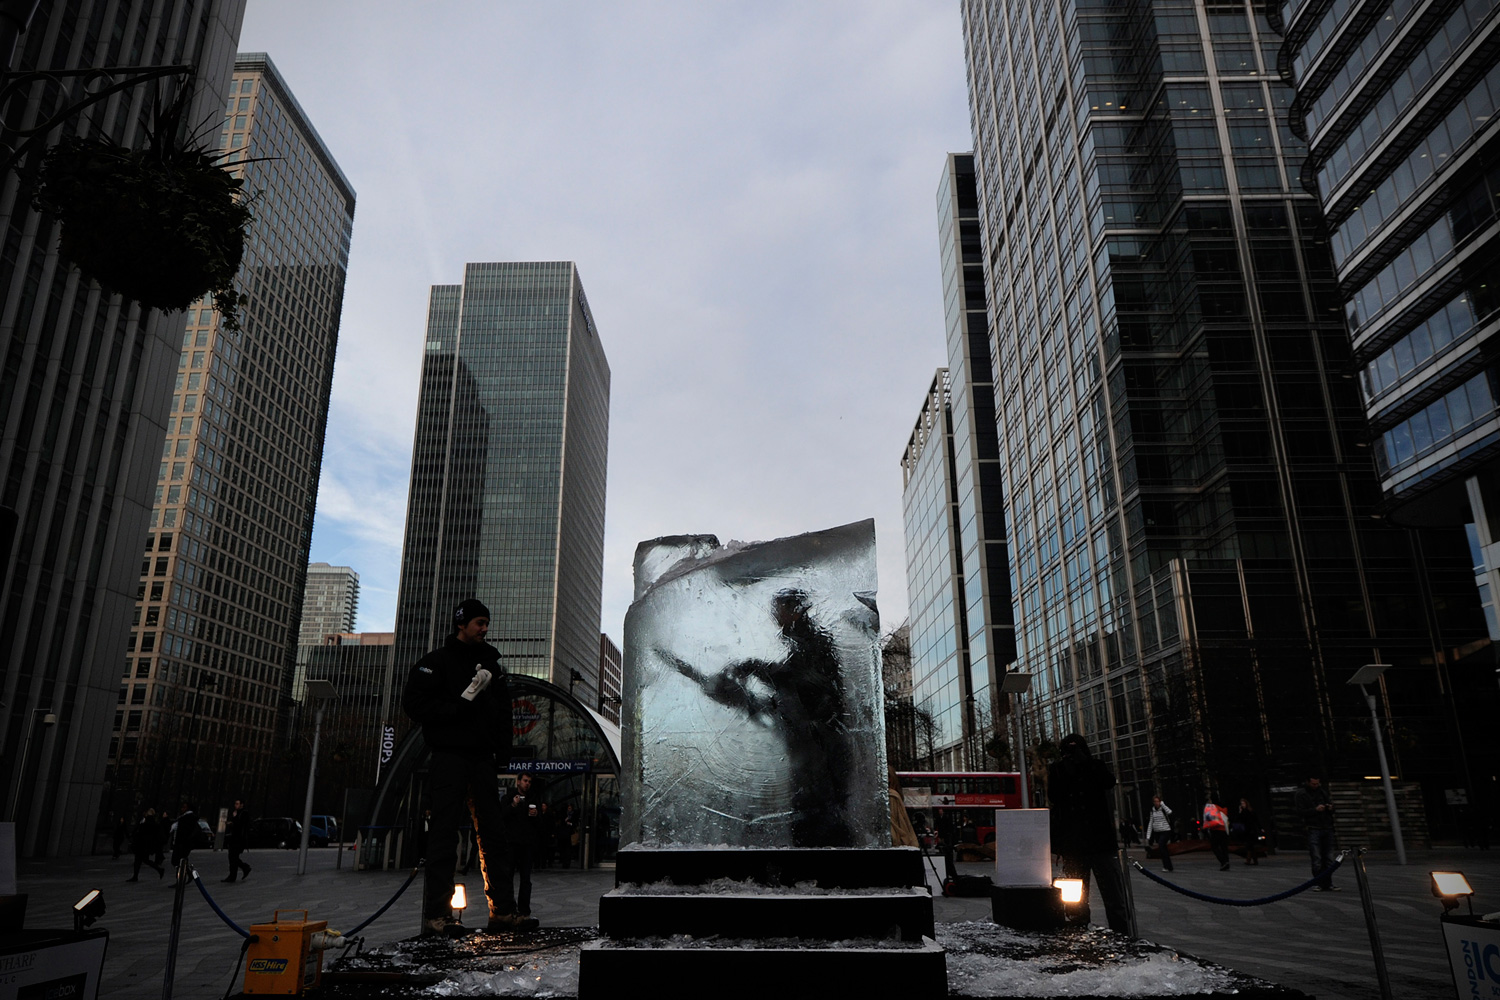 January 13, 2012. An ice sculptor works on a block of ice during the London Ice Sculpting Festival in Canary Wharf, East London.